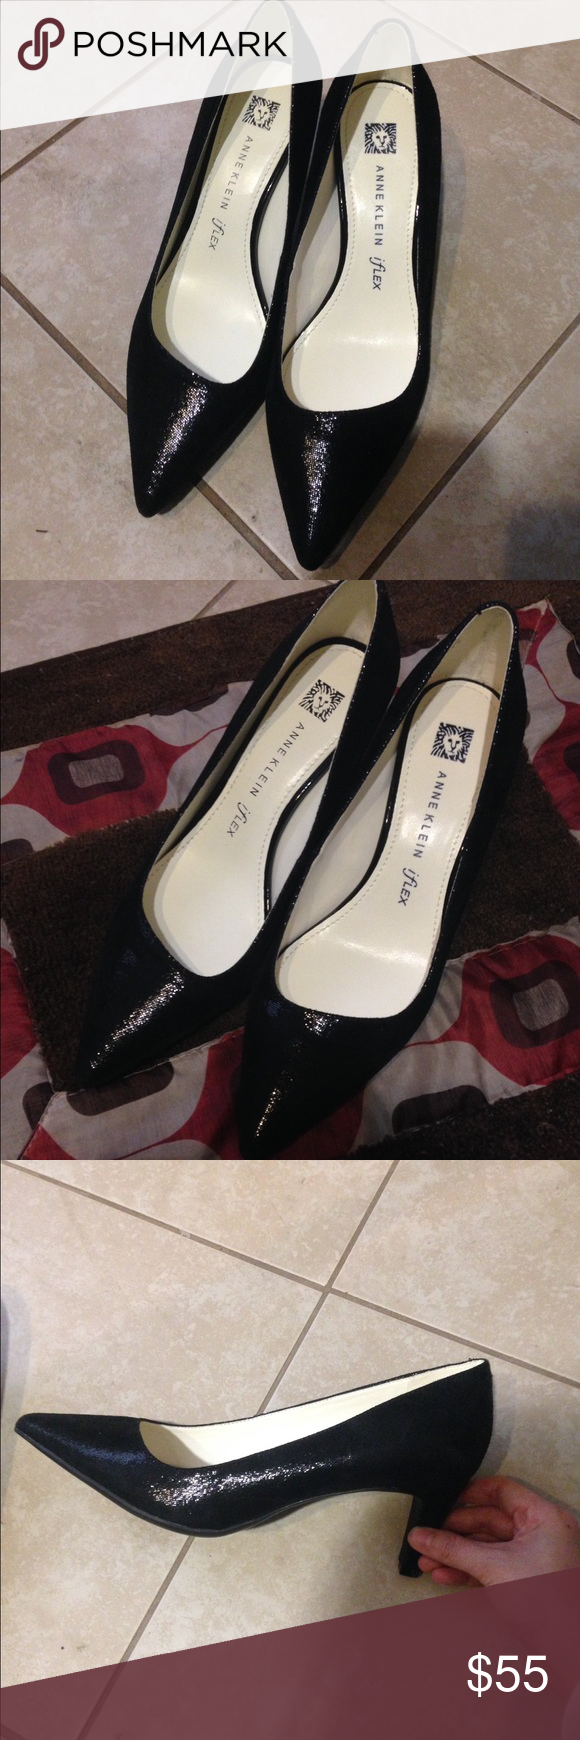 Anne Klein shoes size 7.5 New. Gorgeous. Can ask for the price you want. Just comment. Anne Klein Shoes Heels